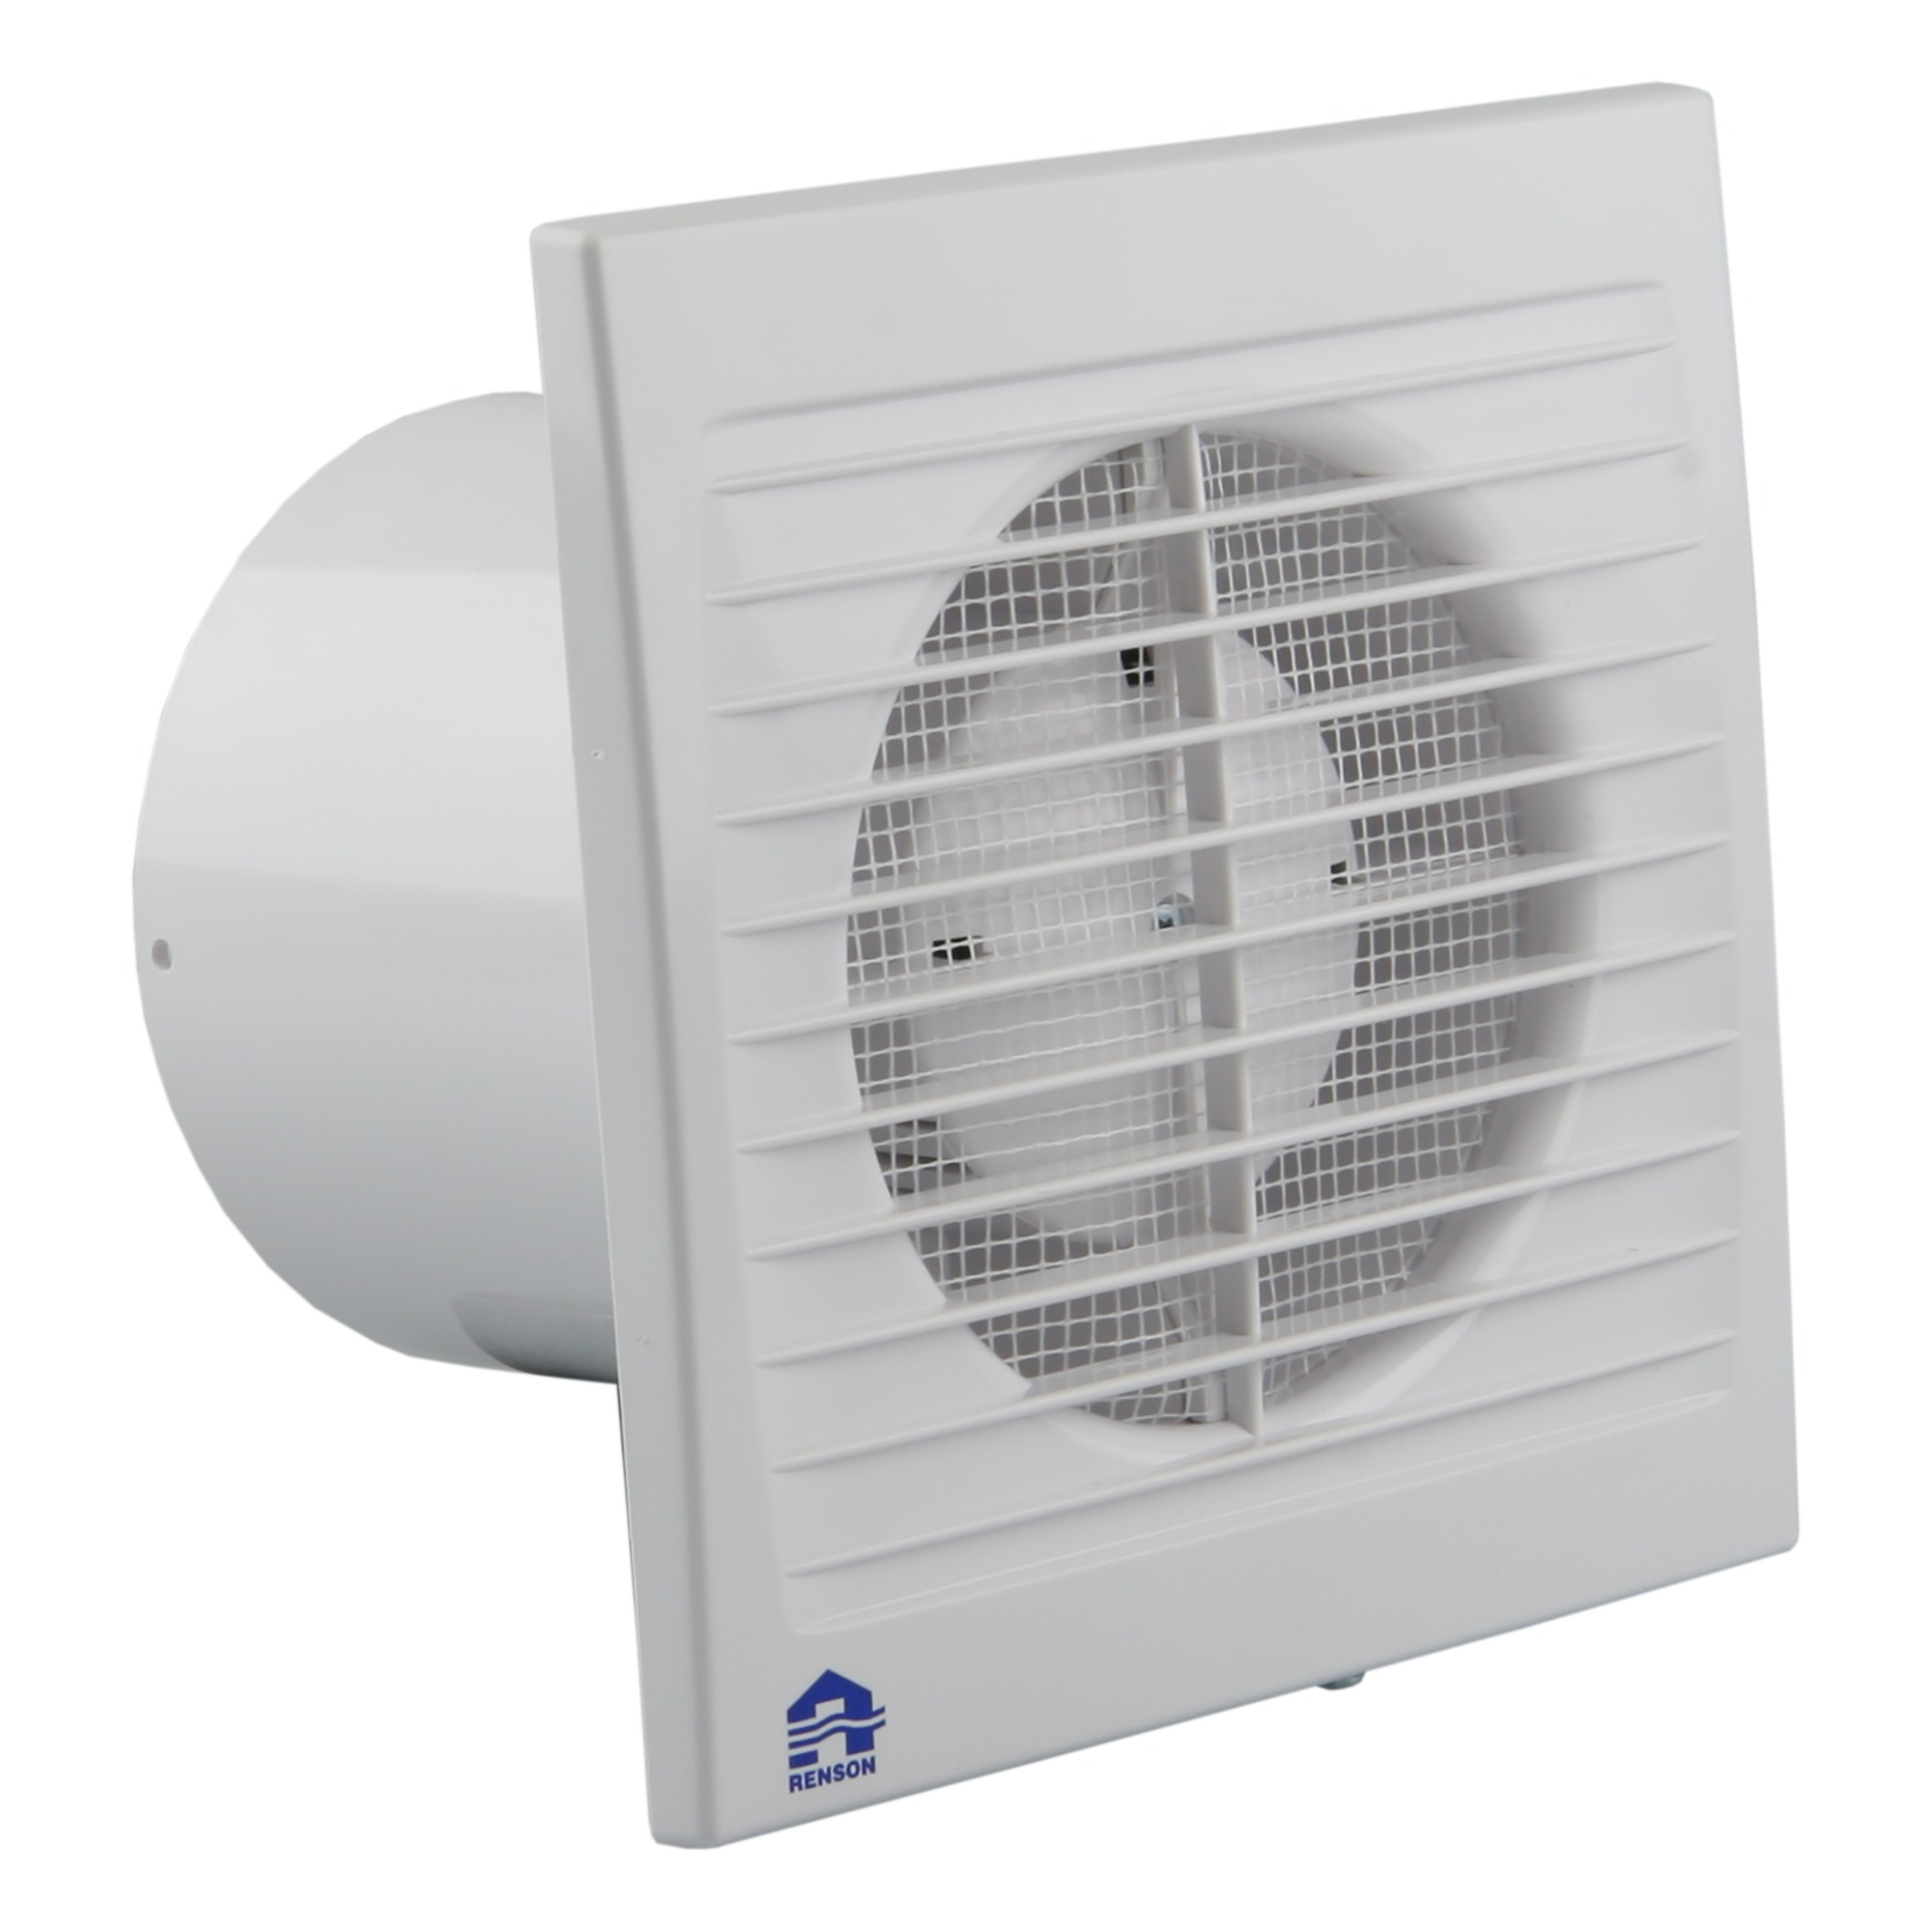 Extracteur avec minuterie renson greenwave 100 mm blanc for Extracteur d air 80 mm